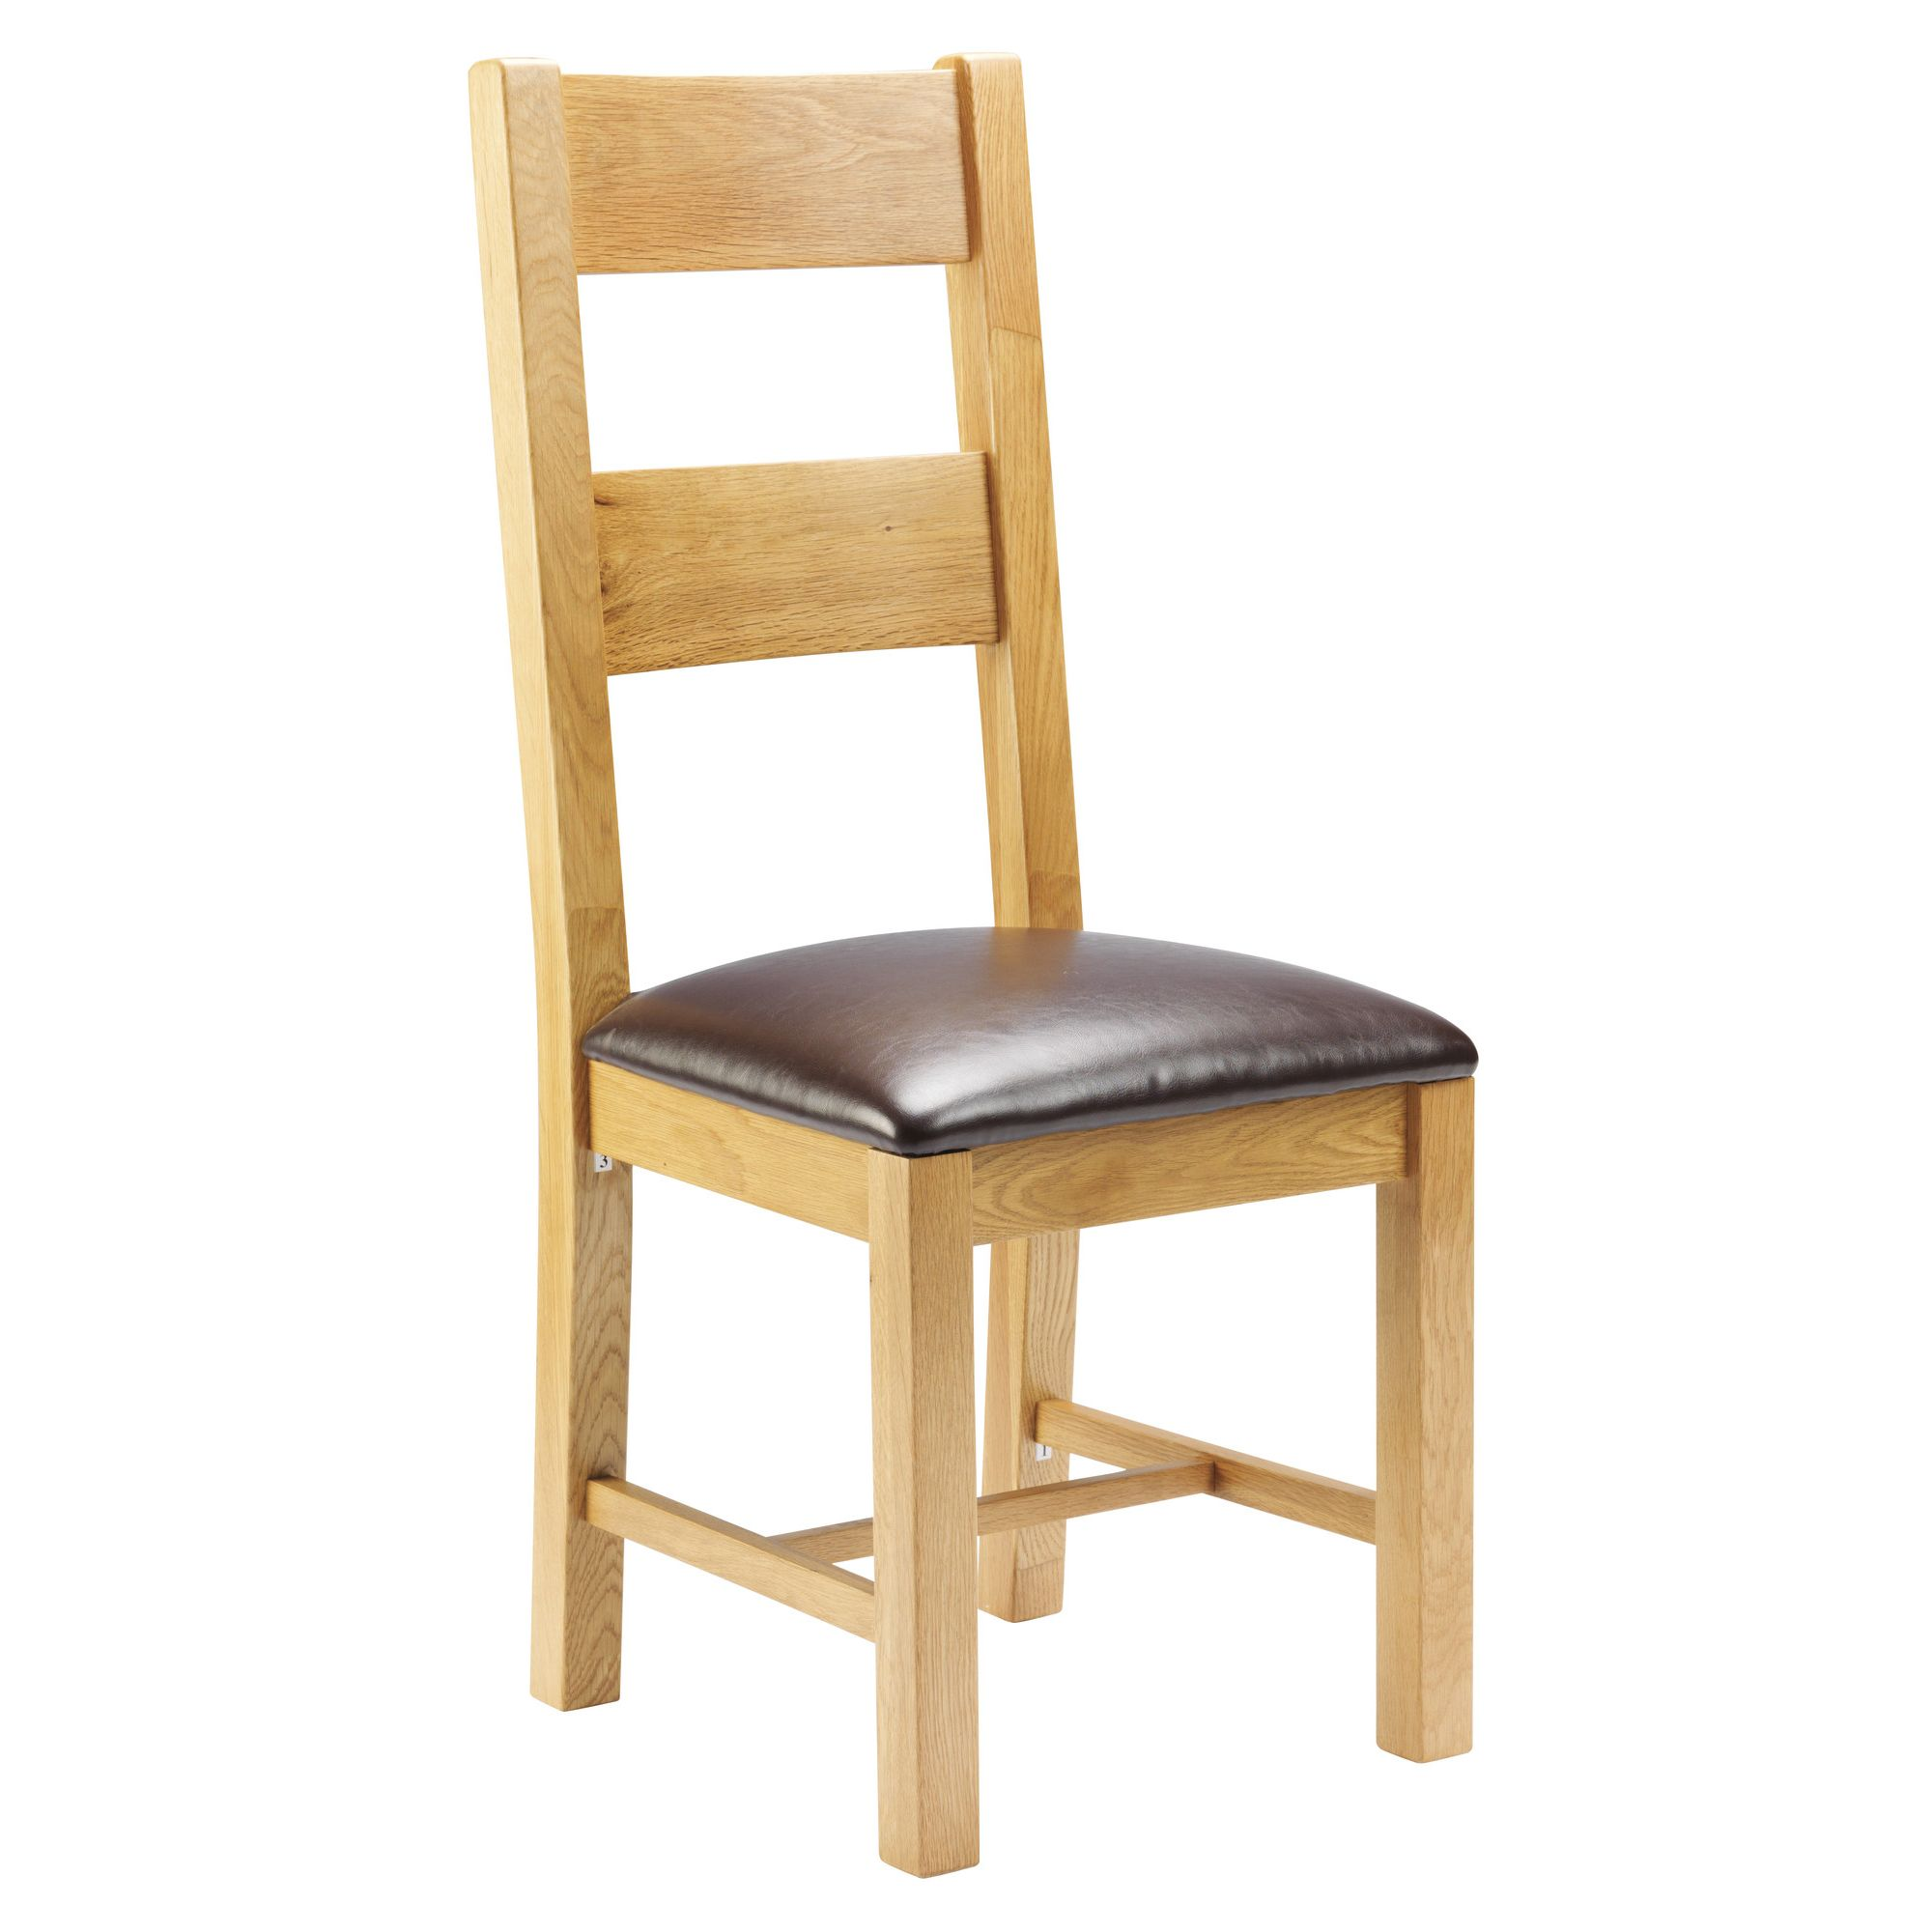 Thorndon Taunton Dining Chair with PU Seat in Medium Oak